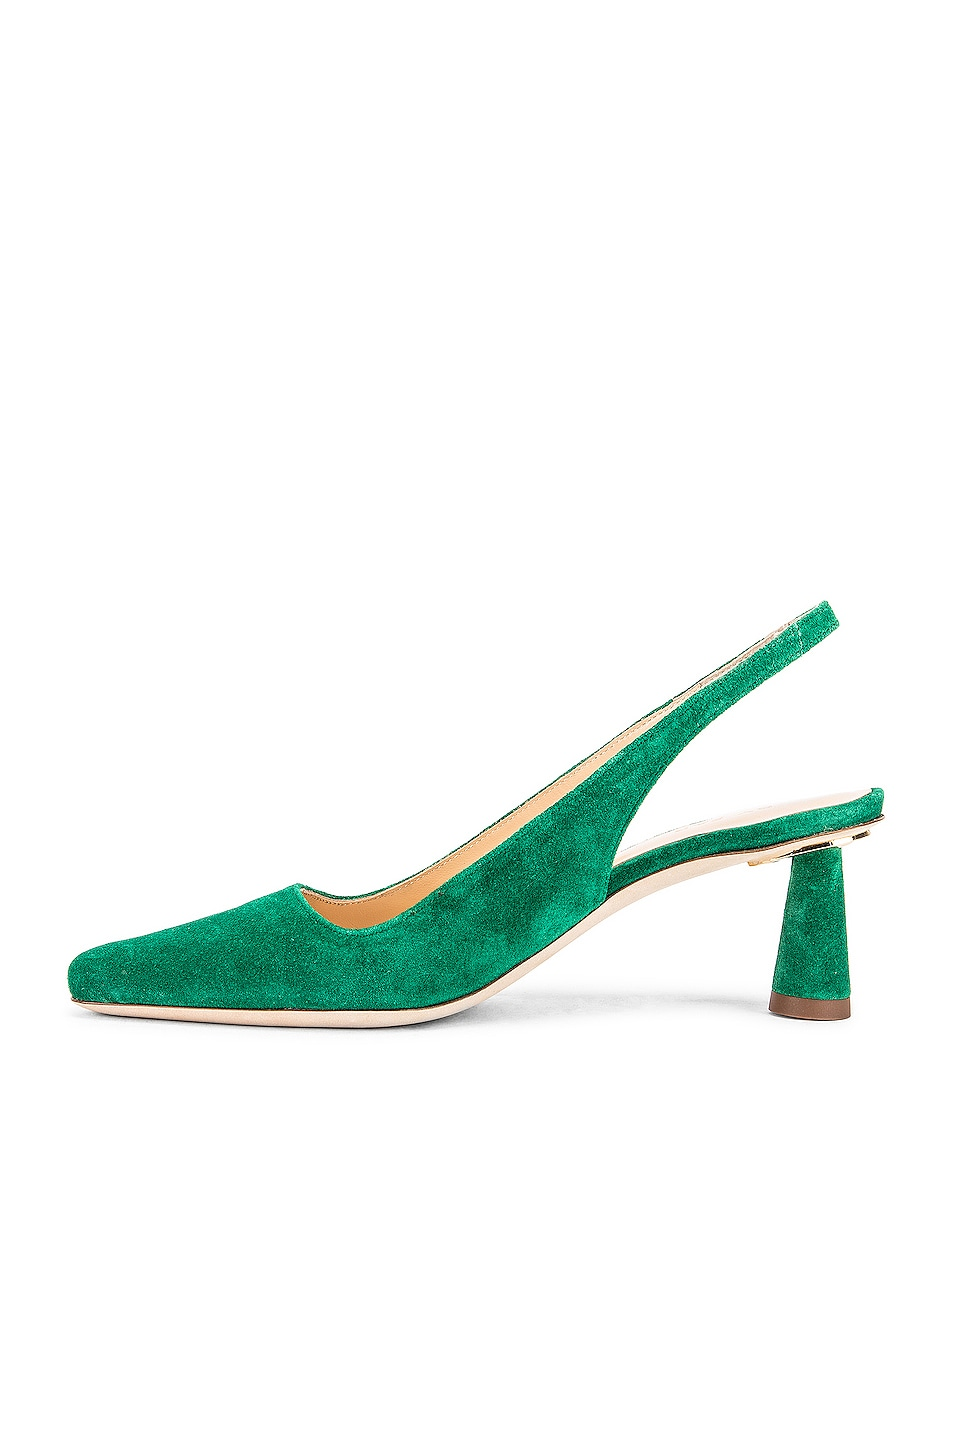 Image 5 of BY FAR Diana Suede Leather Pump in Green